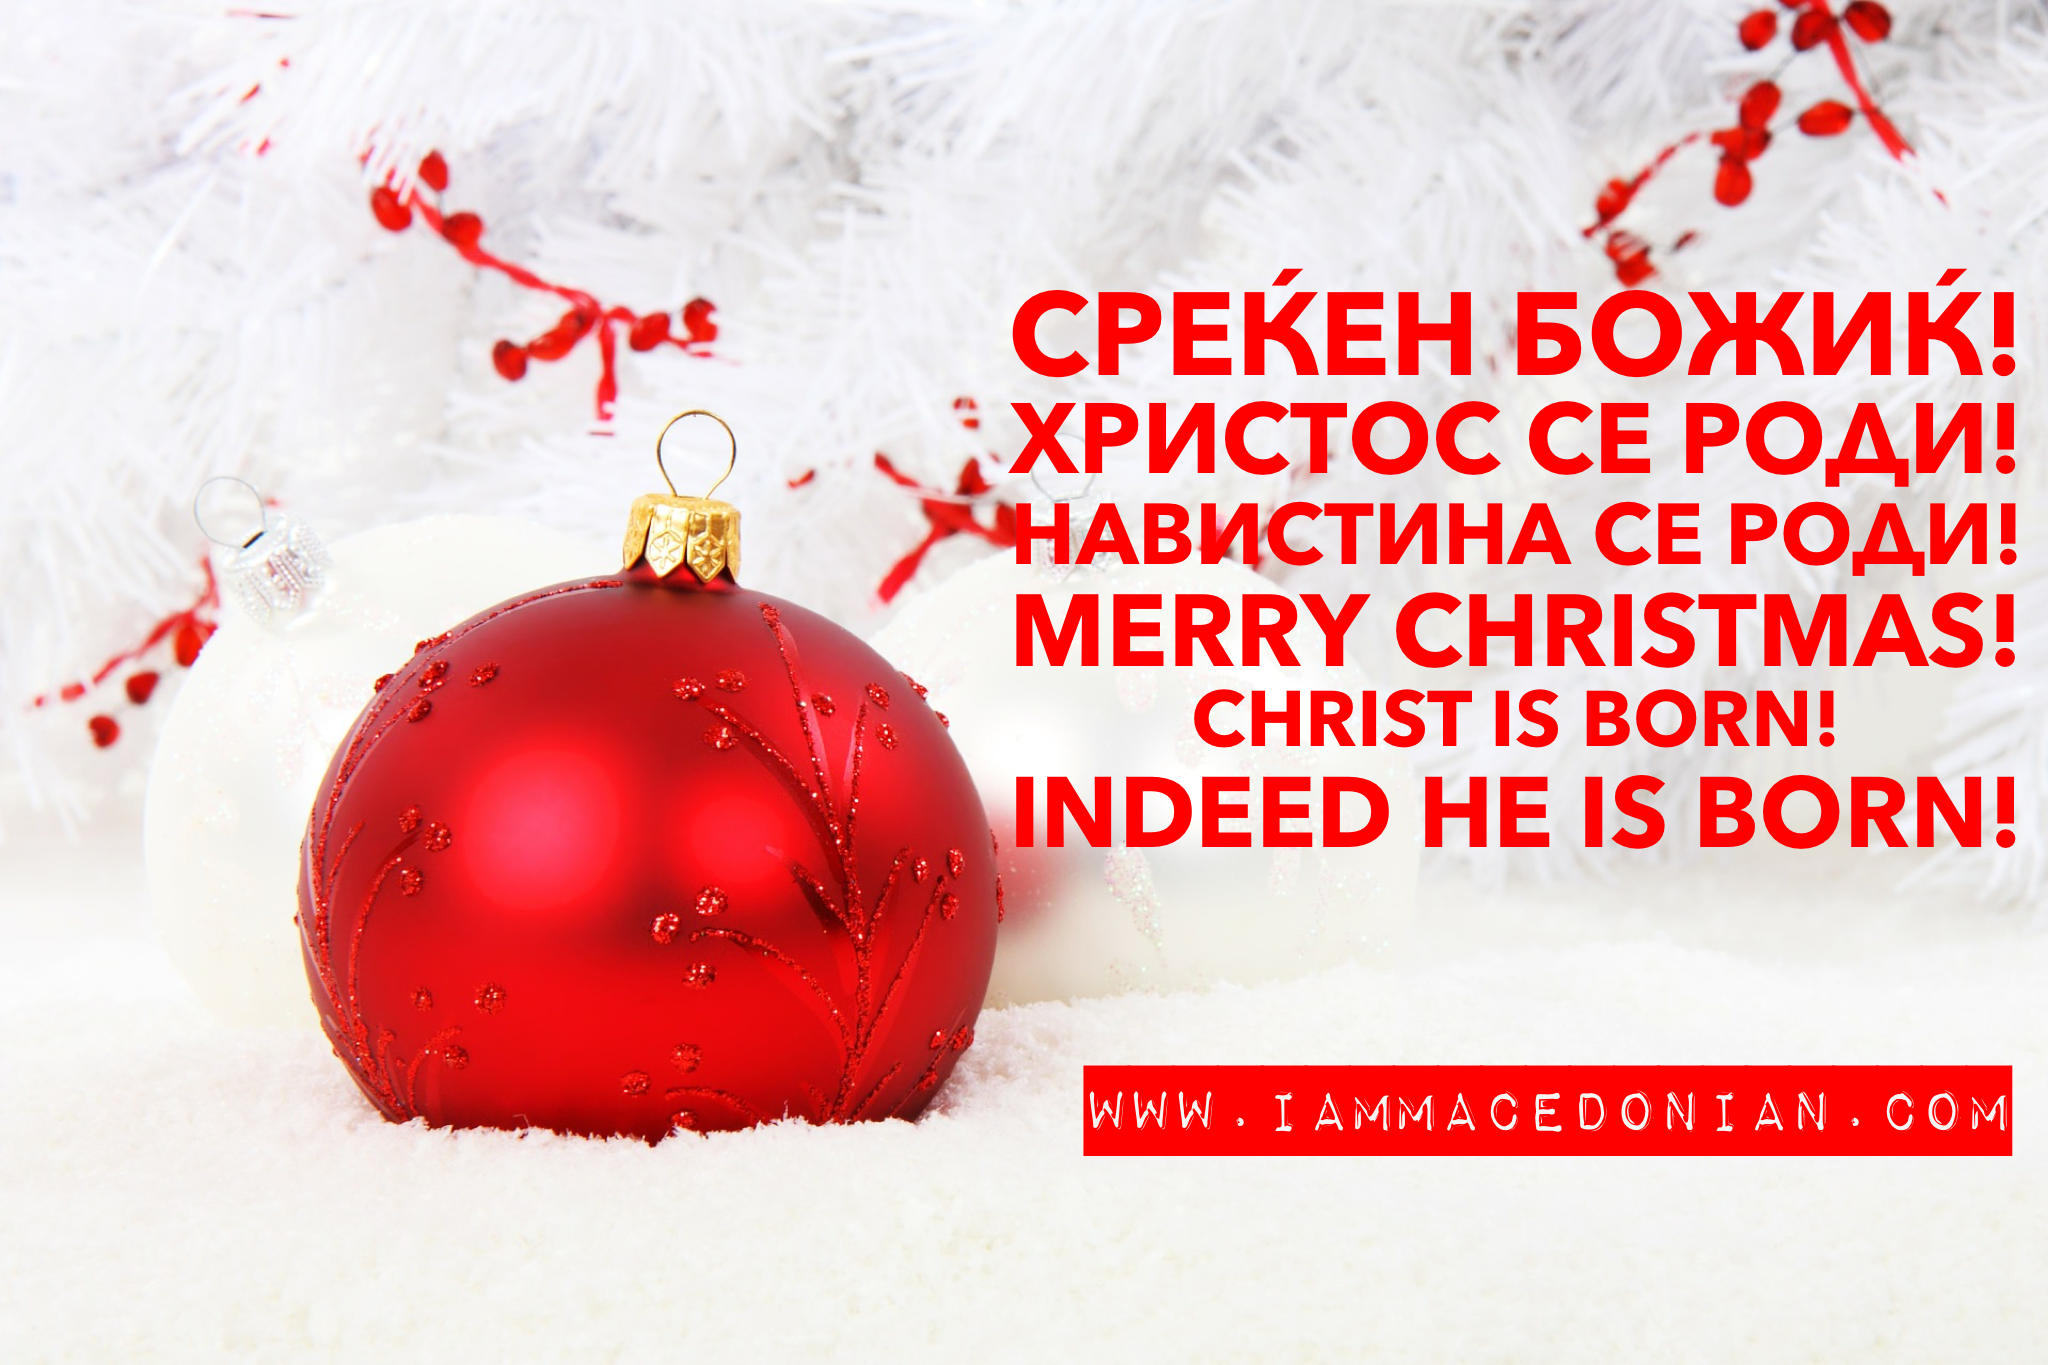 Merry christmas why do macedonians celebrate christmas on merry christmas why do macedonians celebrate christmas on january 7th i am macedonian kristyandbryce Image collections